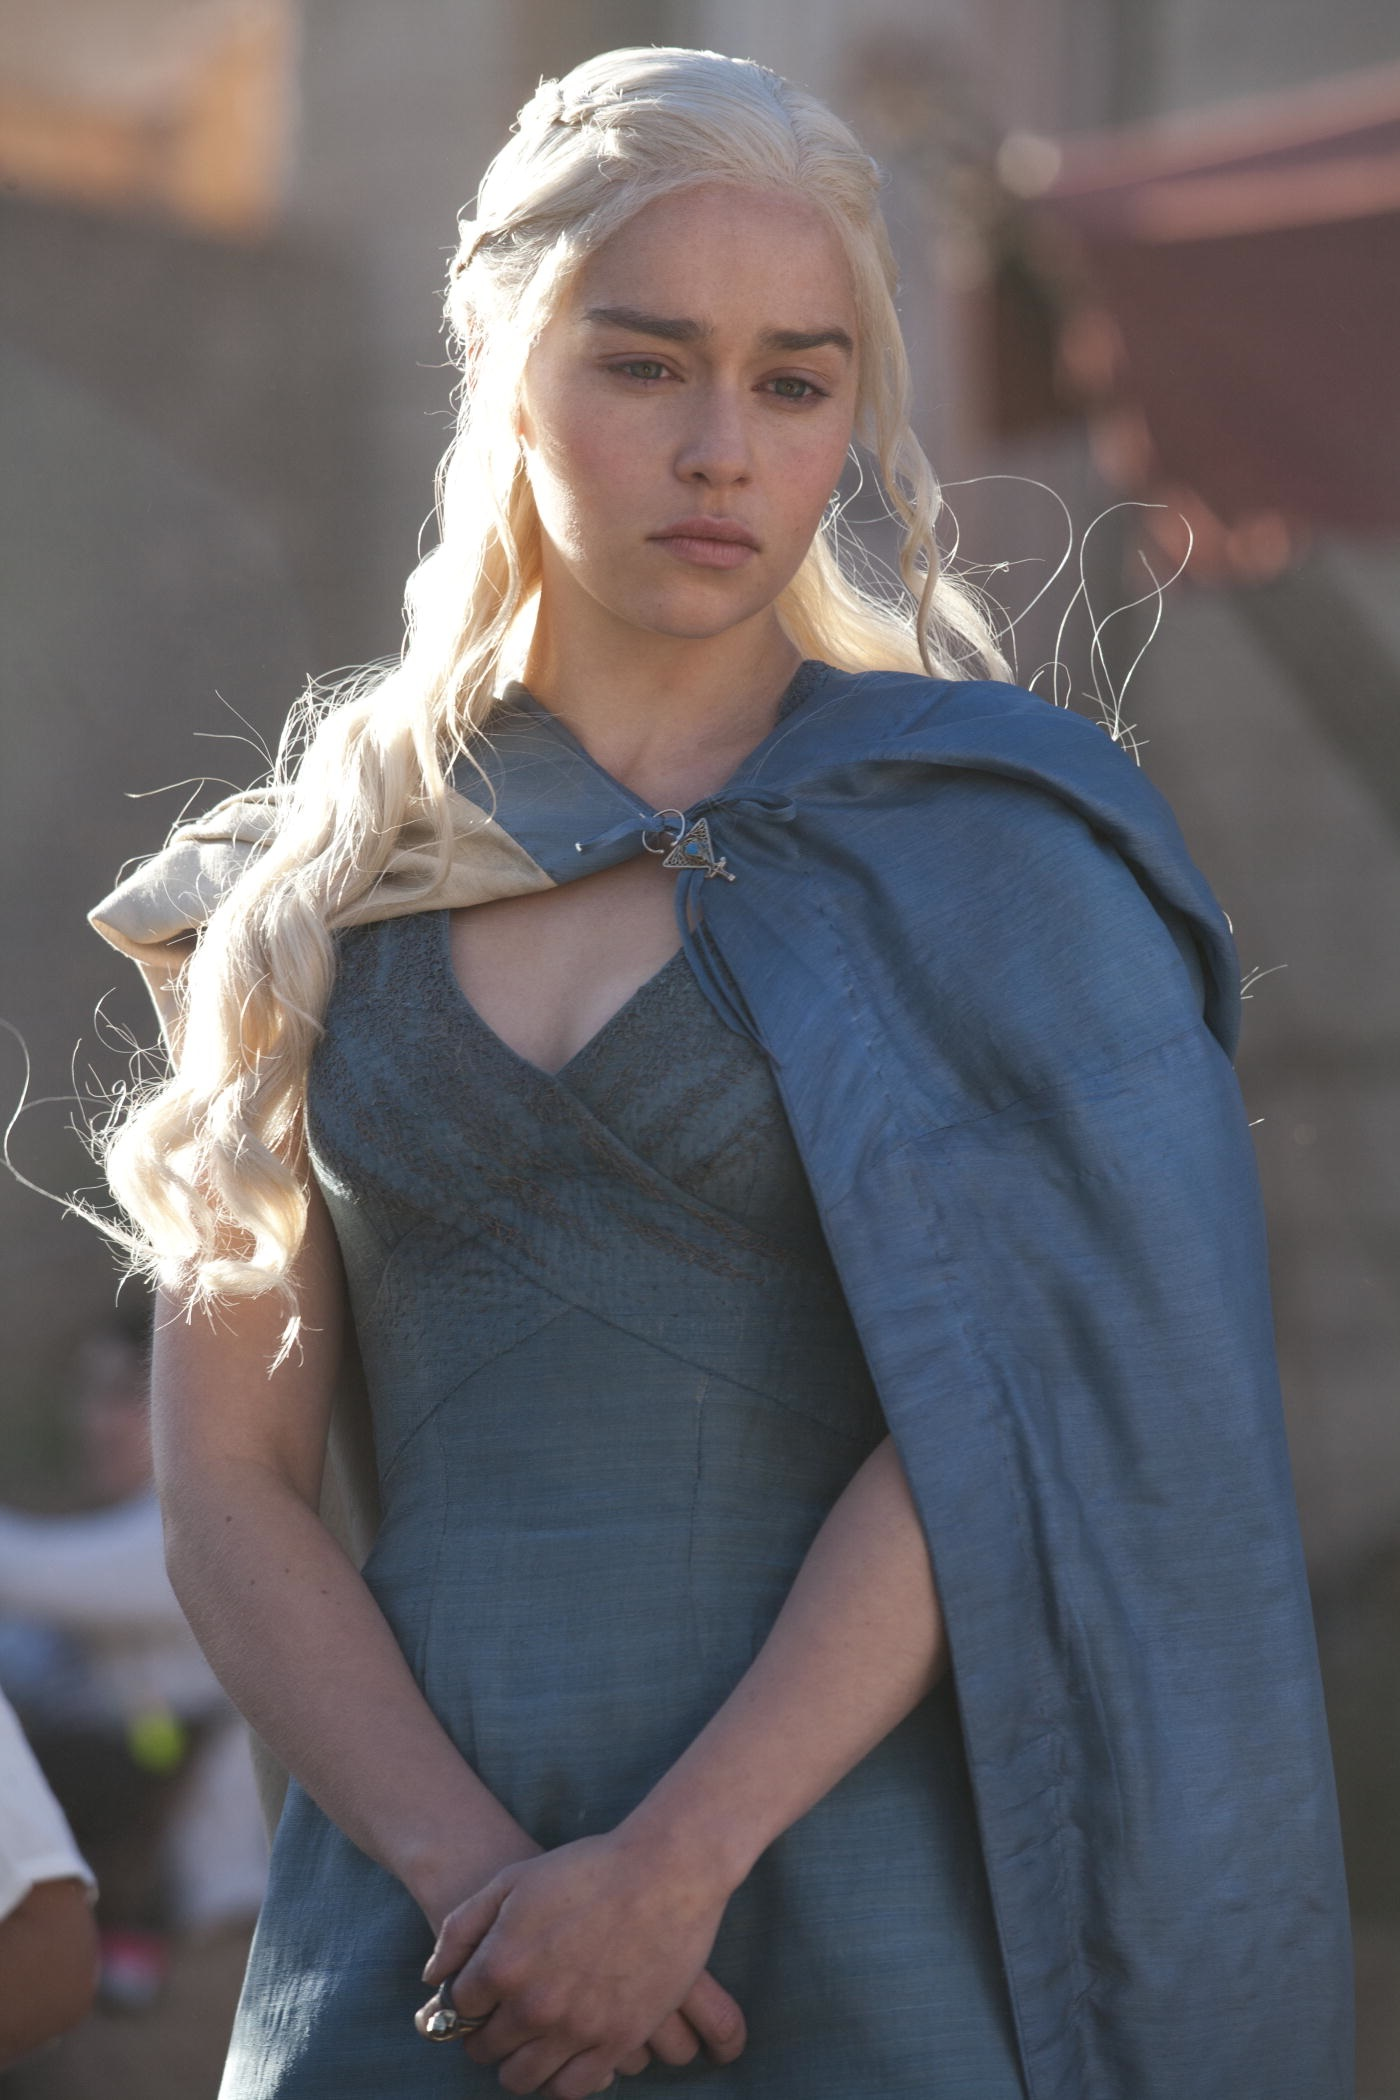 Daenerys Season 3 Blue Dress Help - Cosplay.com